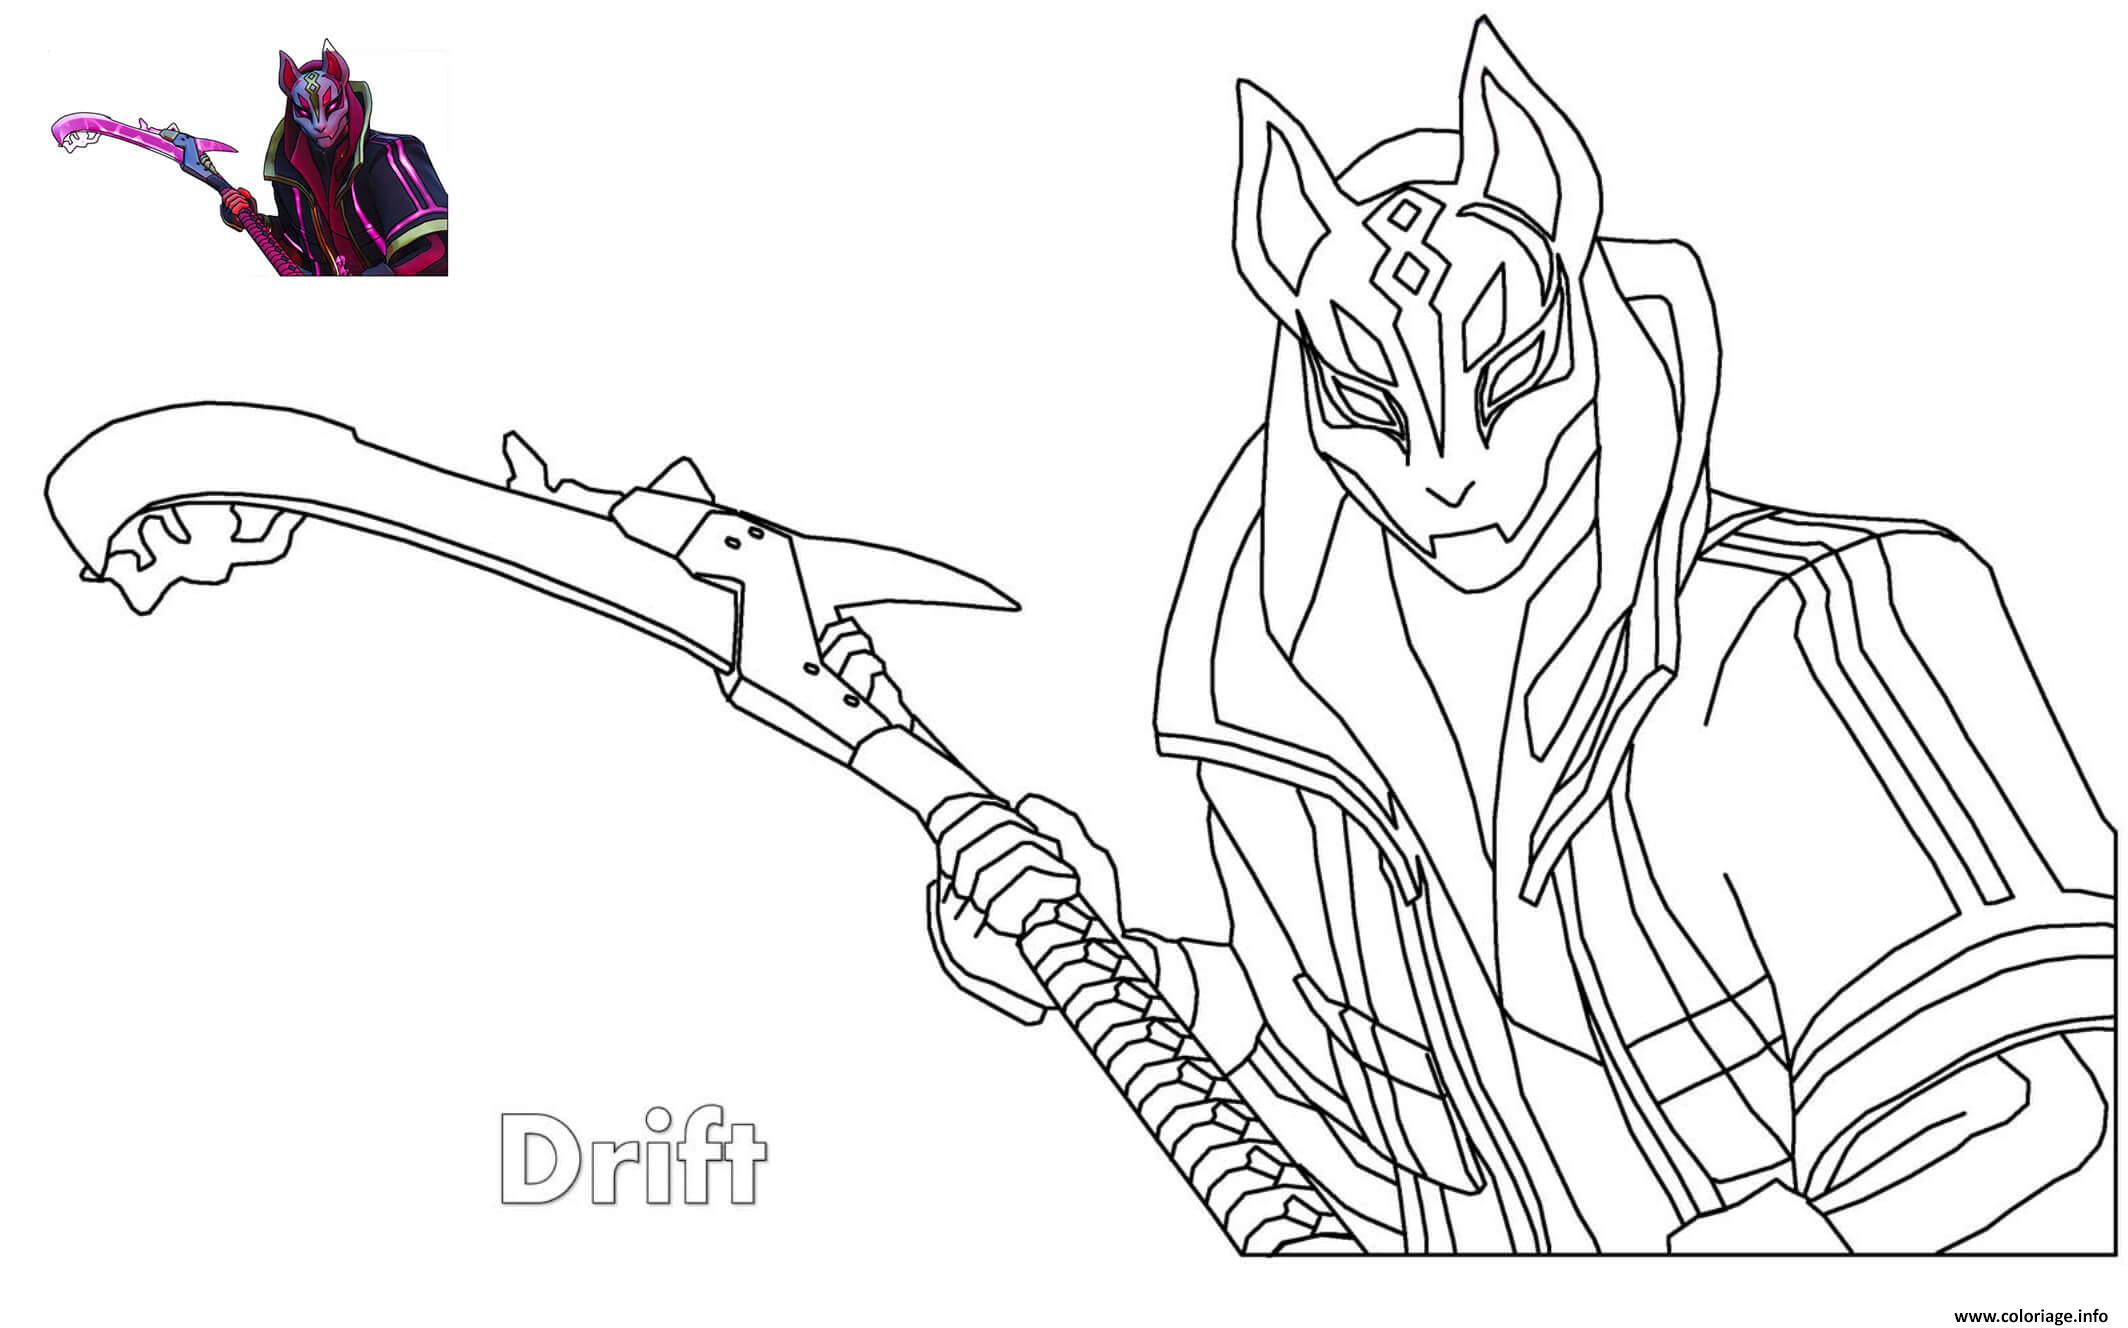 Coloriage Drift Ultimate Fortnite Jecolorie Com